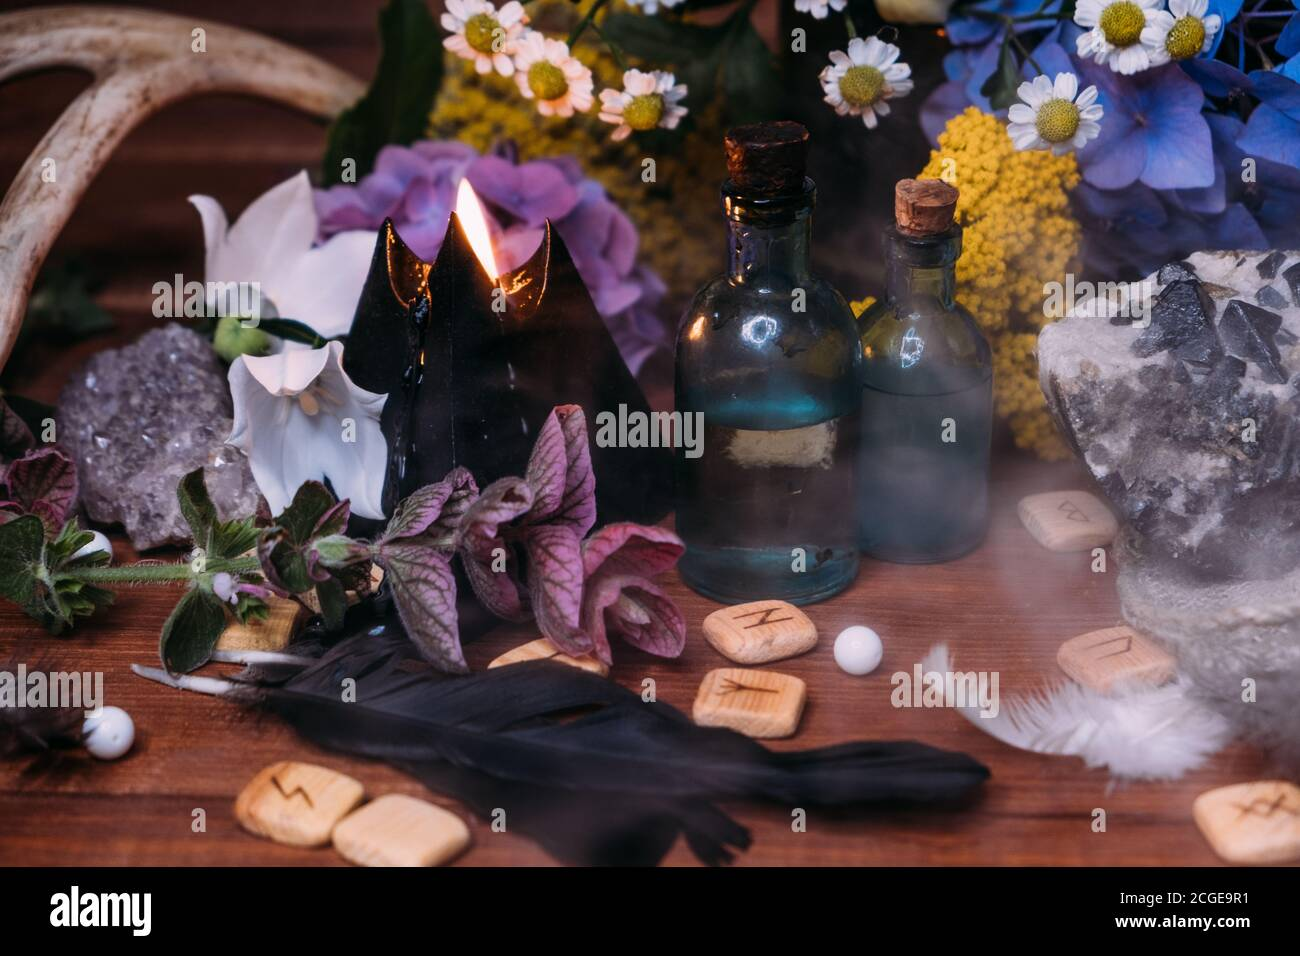 Magic potion bottle. Witchcraft halloween concept with potions, herbs and occult equipment. Magical still life with copy space on a dark background. Stock Photo